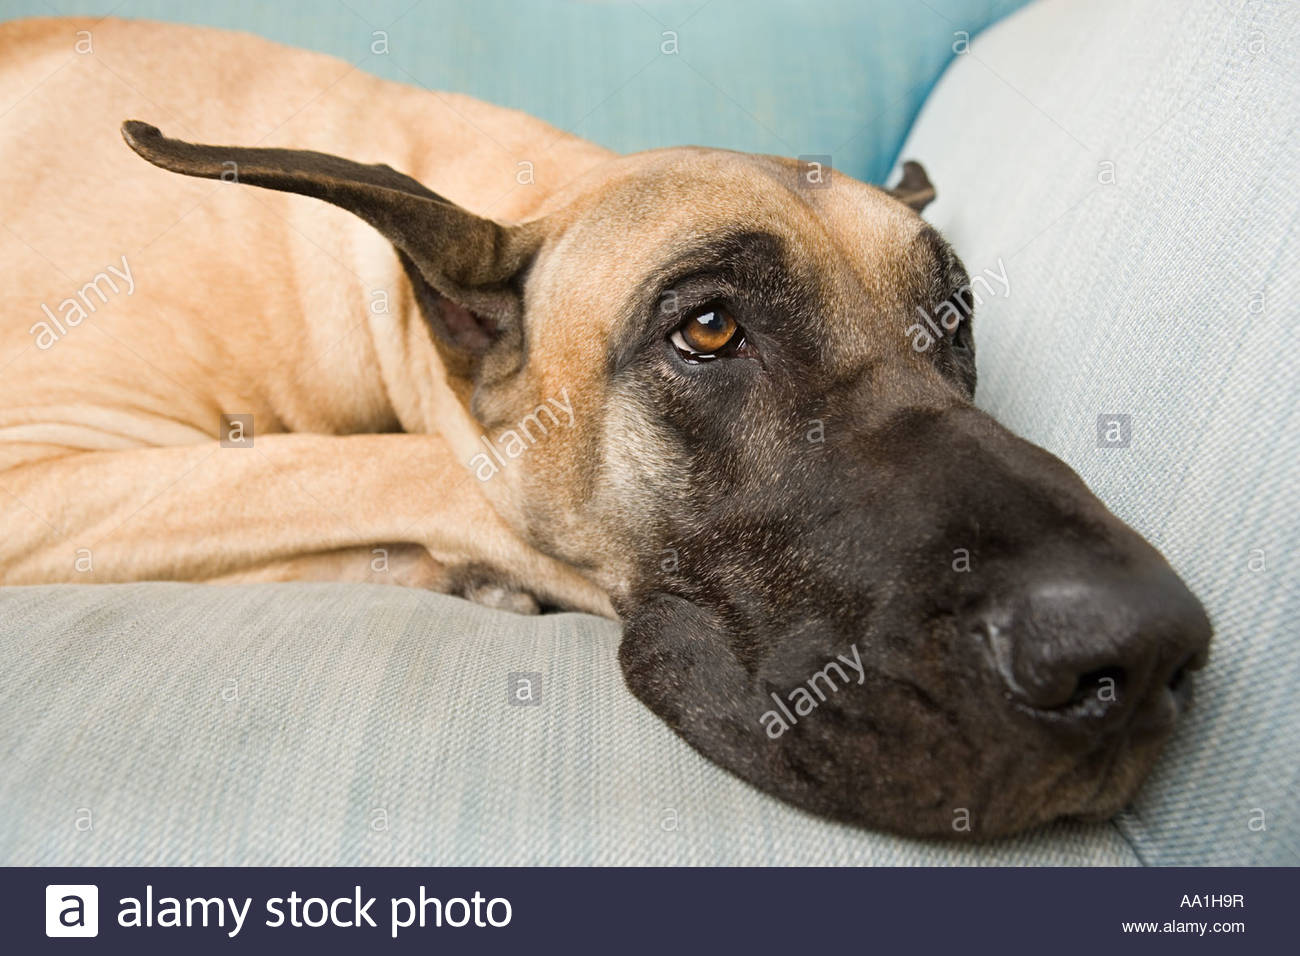 A Great Dane Stock Photos & A Great Dane Stock Images - Alamy